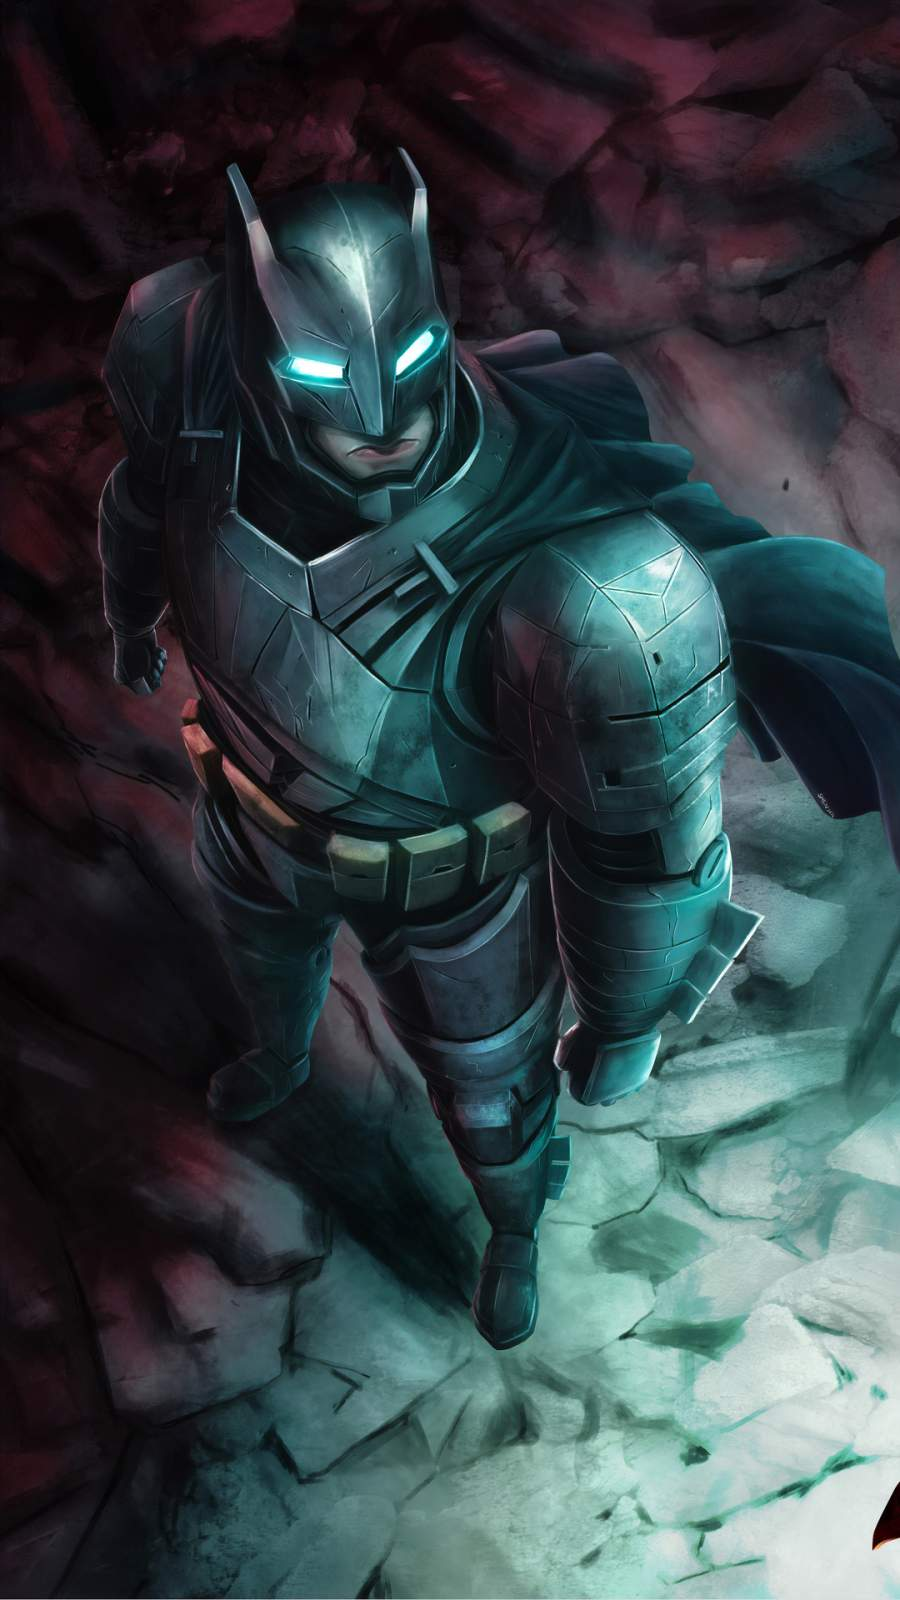 Armored Batman Suit iPhone Wallpaper